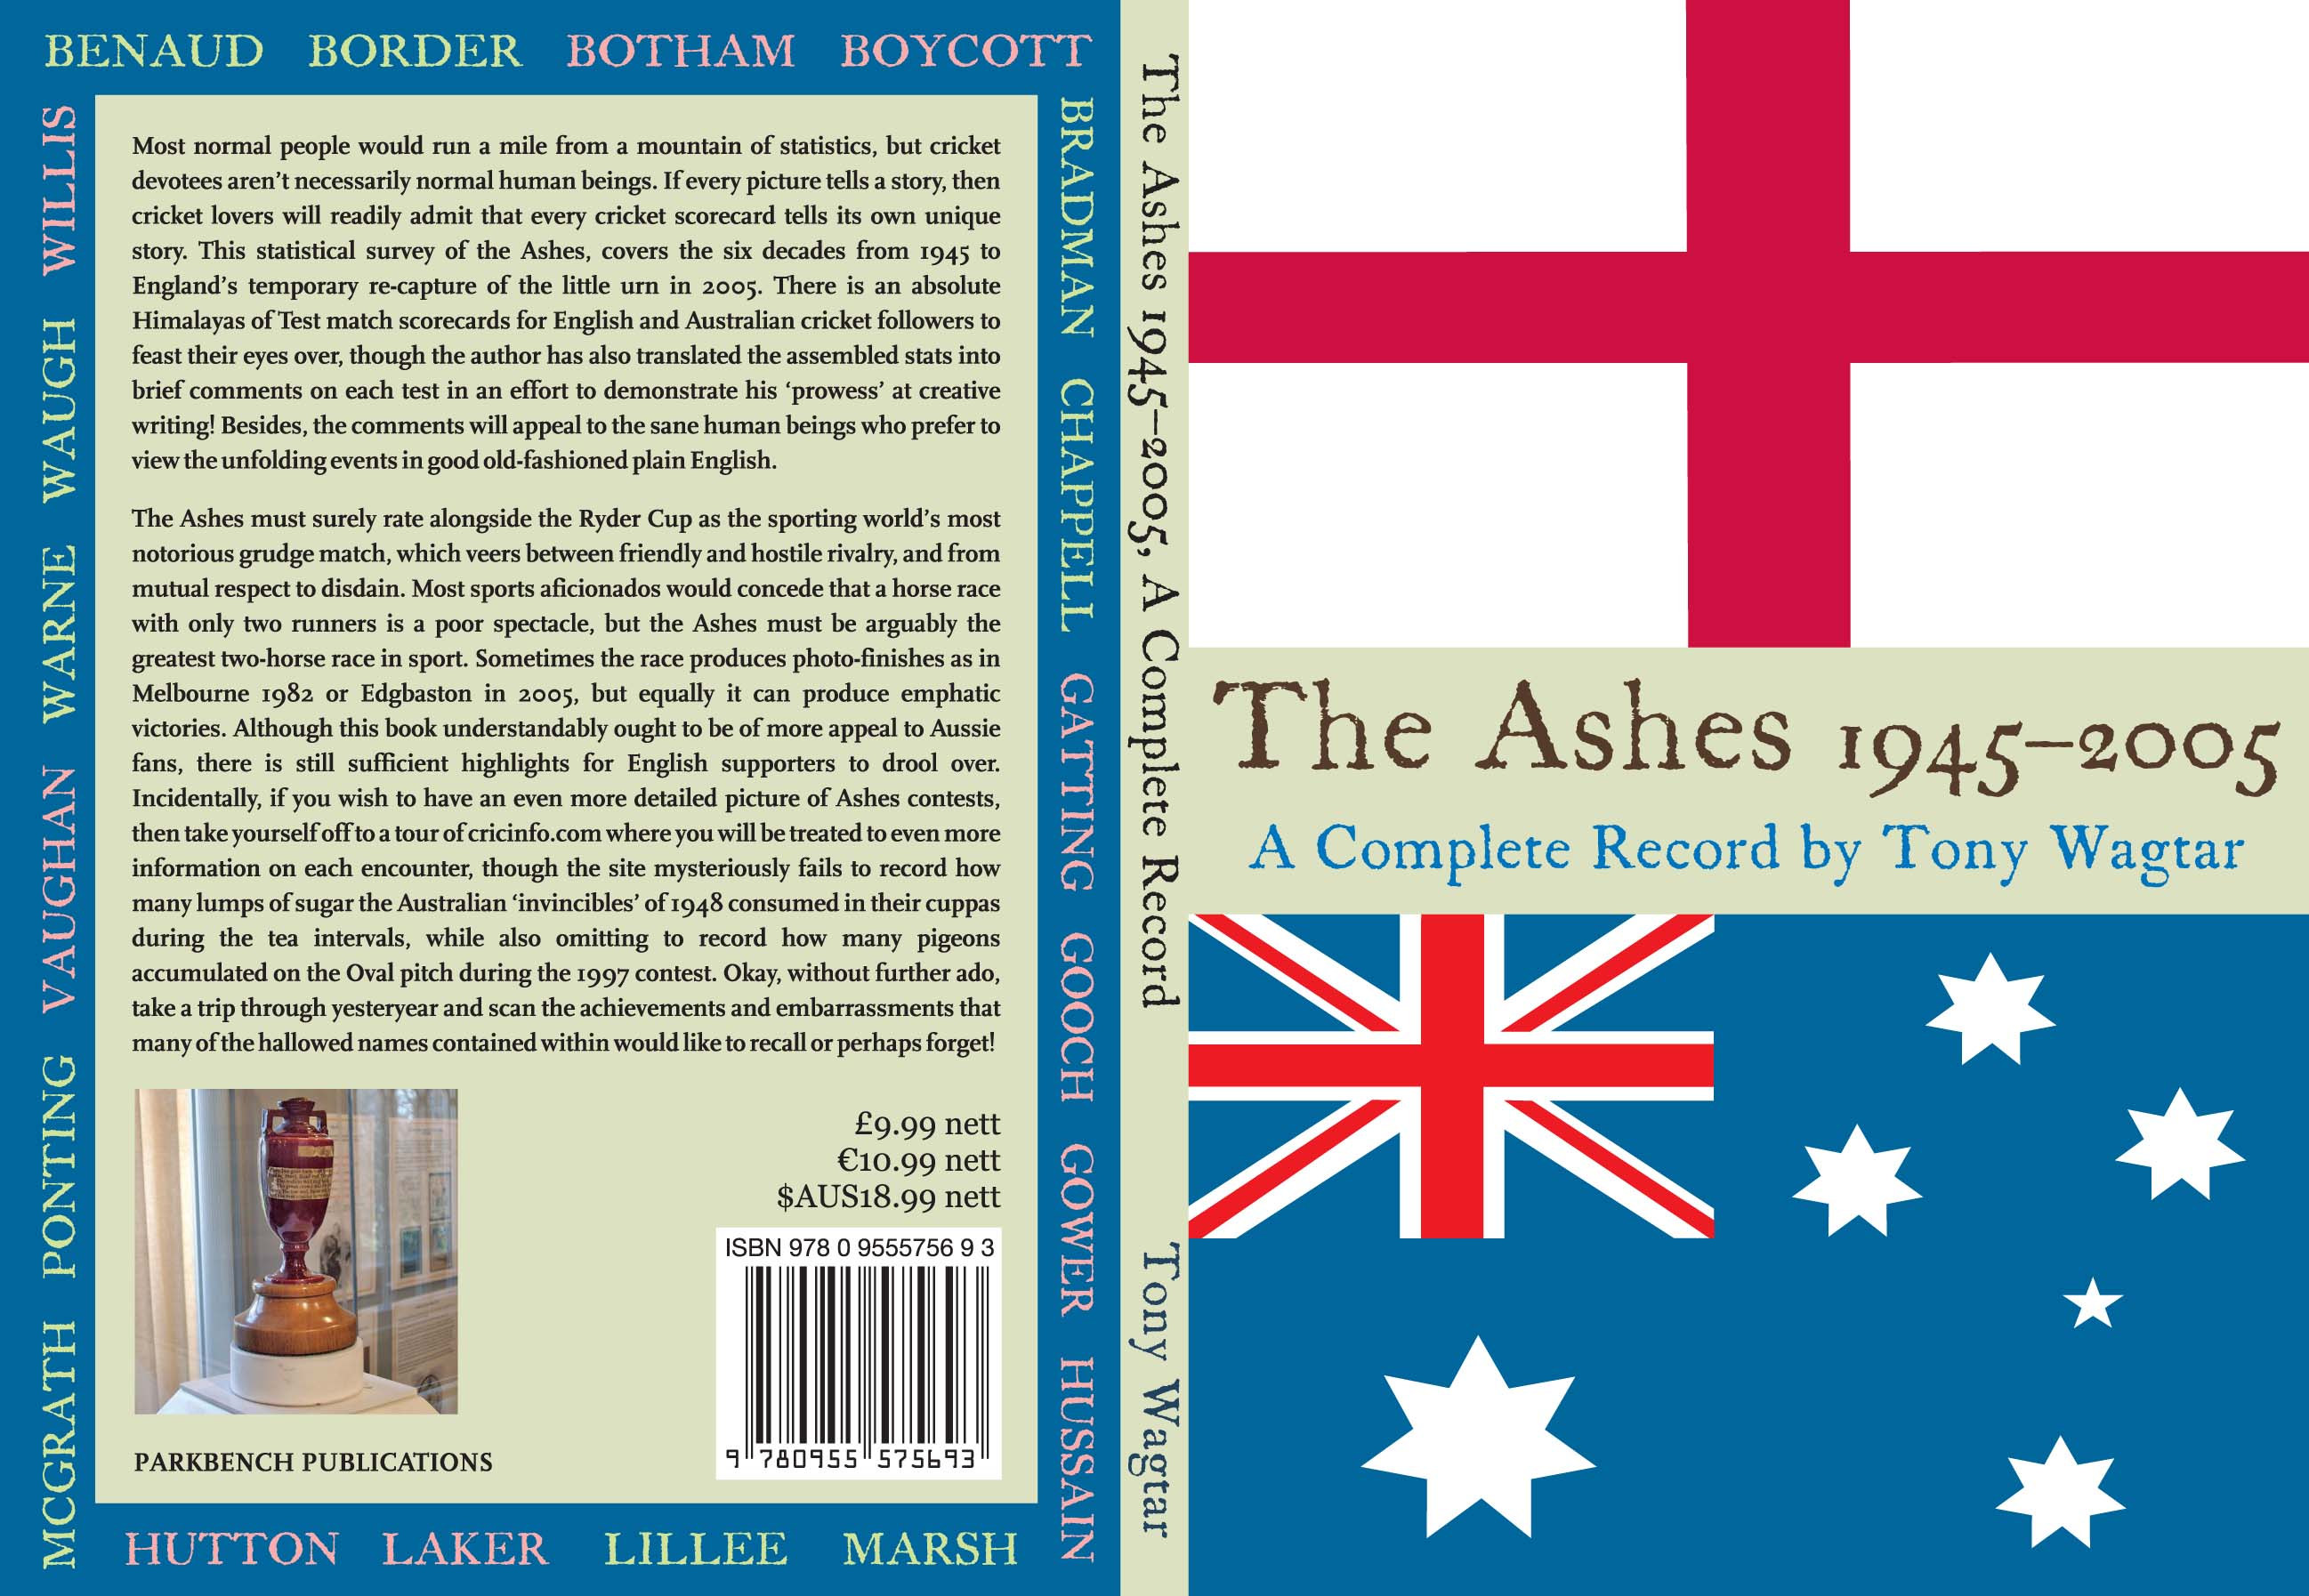 The Ashes, 1945-2005